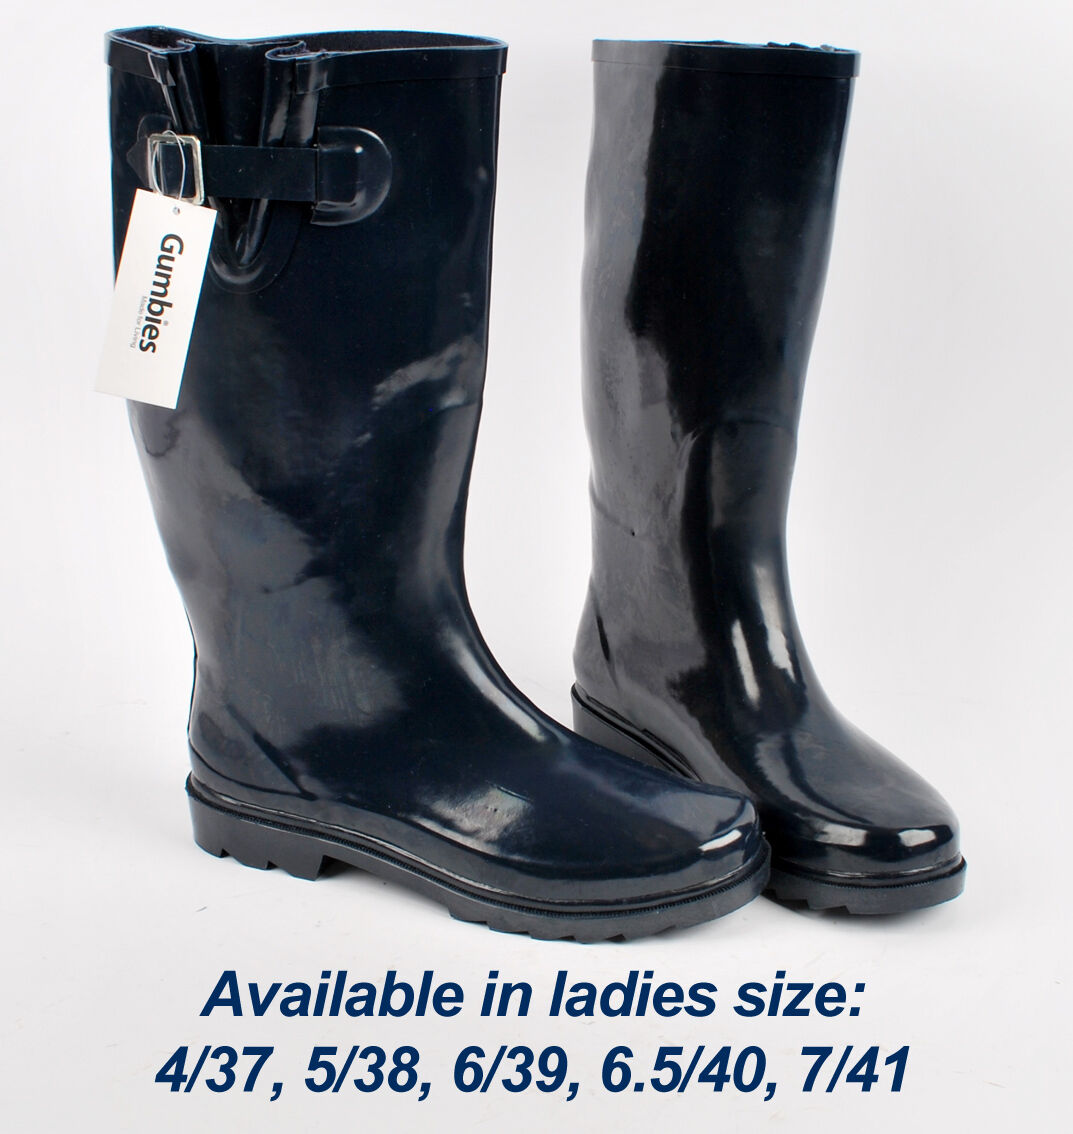 Gumbies Waterproof Welly Navy Blue Wellington Boots Shoes Size 4 5 6 6.5 7 UK